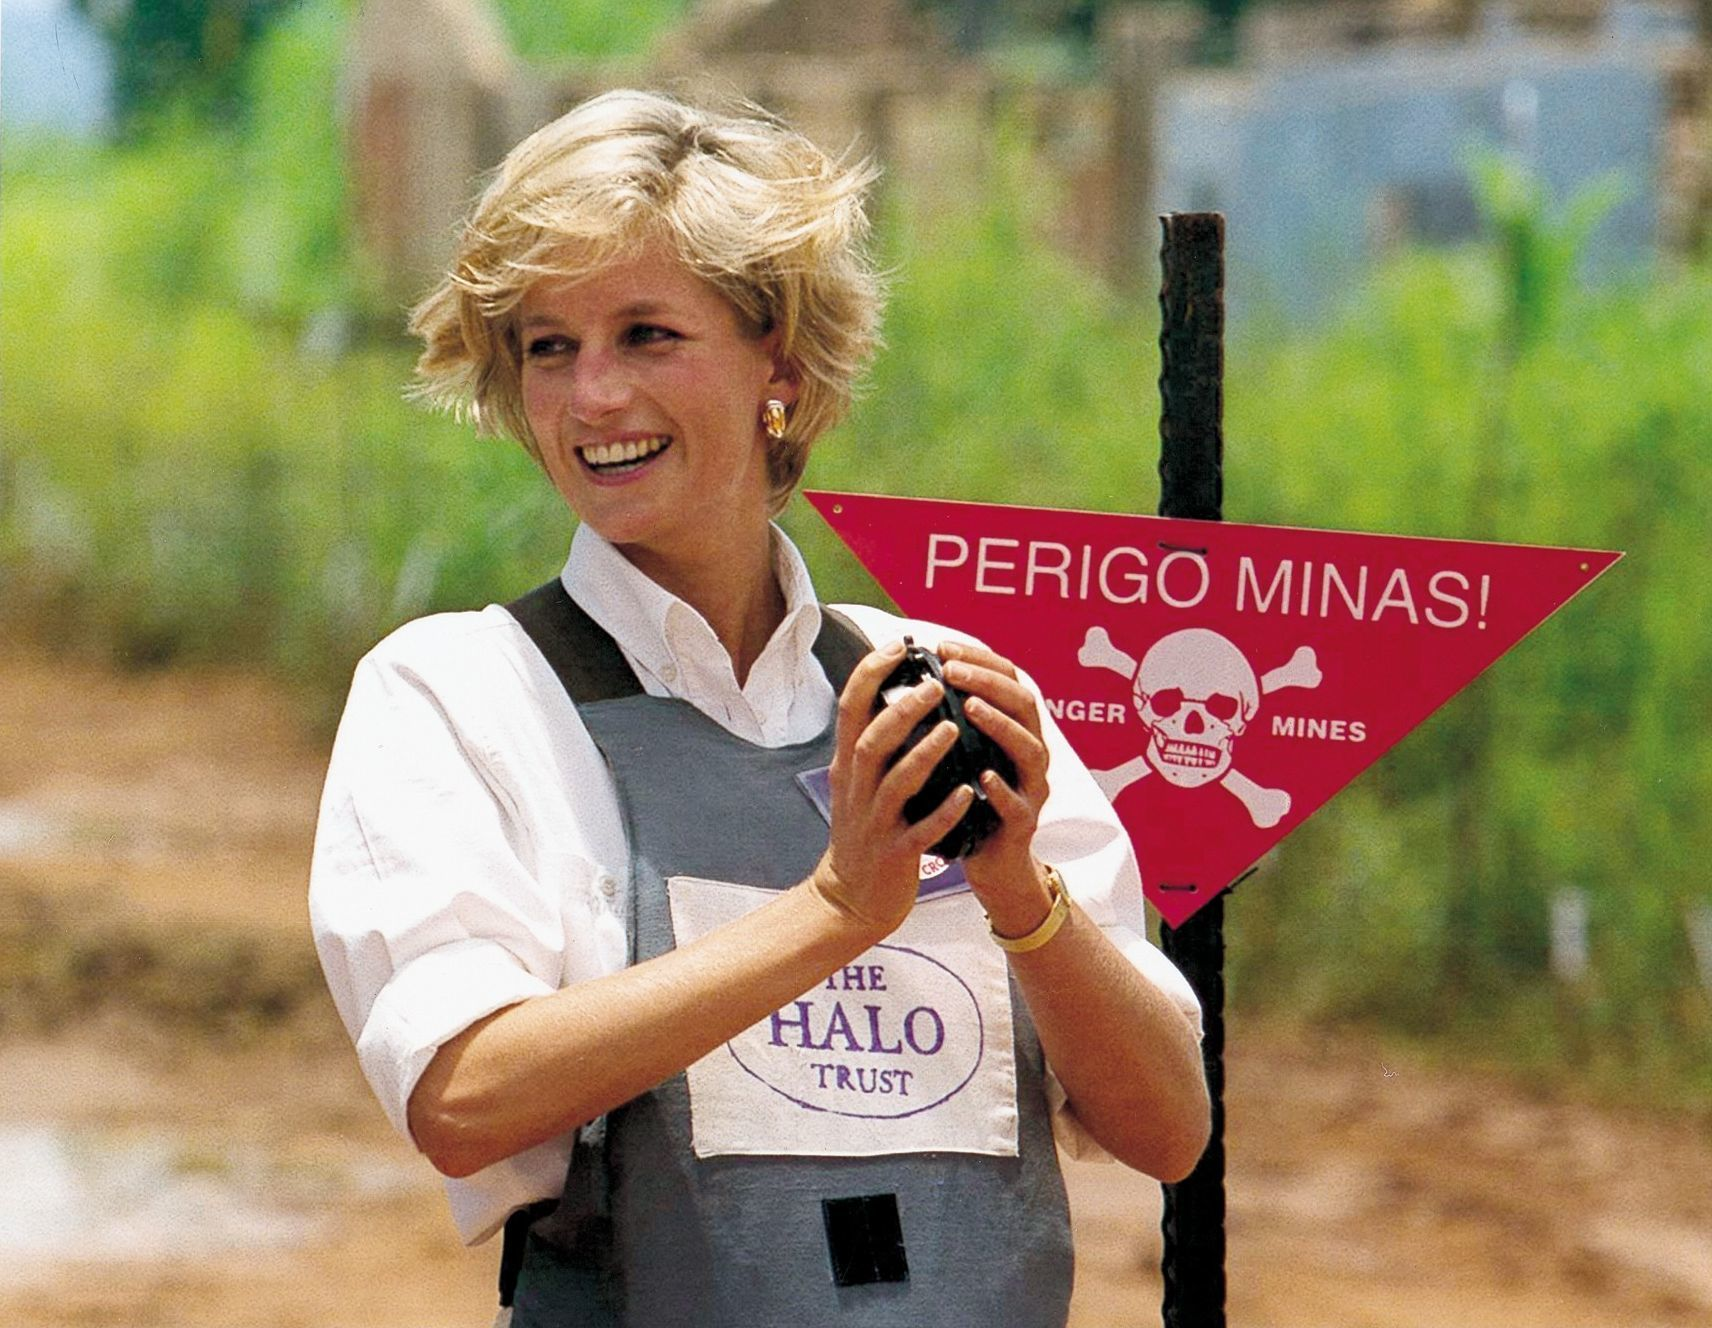 Princess Diana Holding A Defused Mine She Was Given In Huambo Angola. Diana Princess Of Wales Holding A Defused Mine She Was Given In Huambo Angola.,Image: 473648873, License: Rights-managed, Restrictions: , Model Release: no, Credit line: Mike Forster/Daily Mail / Shutterstock Editorial / Profimedia